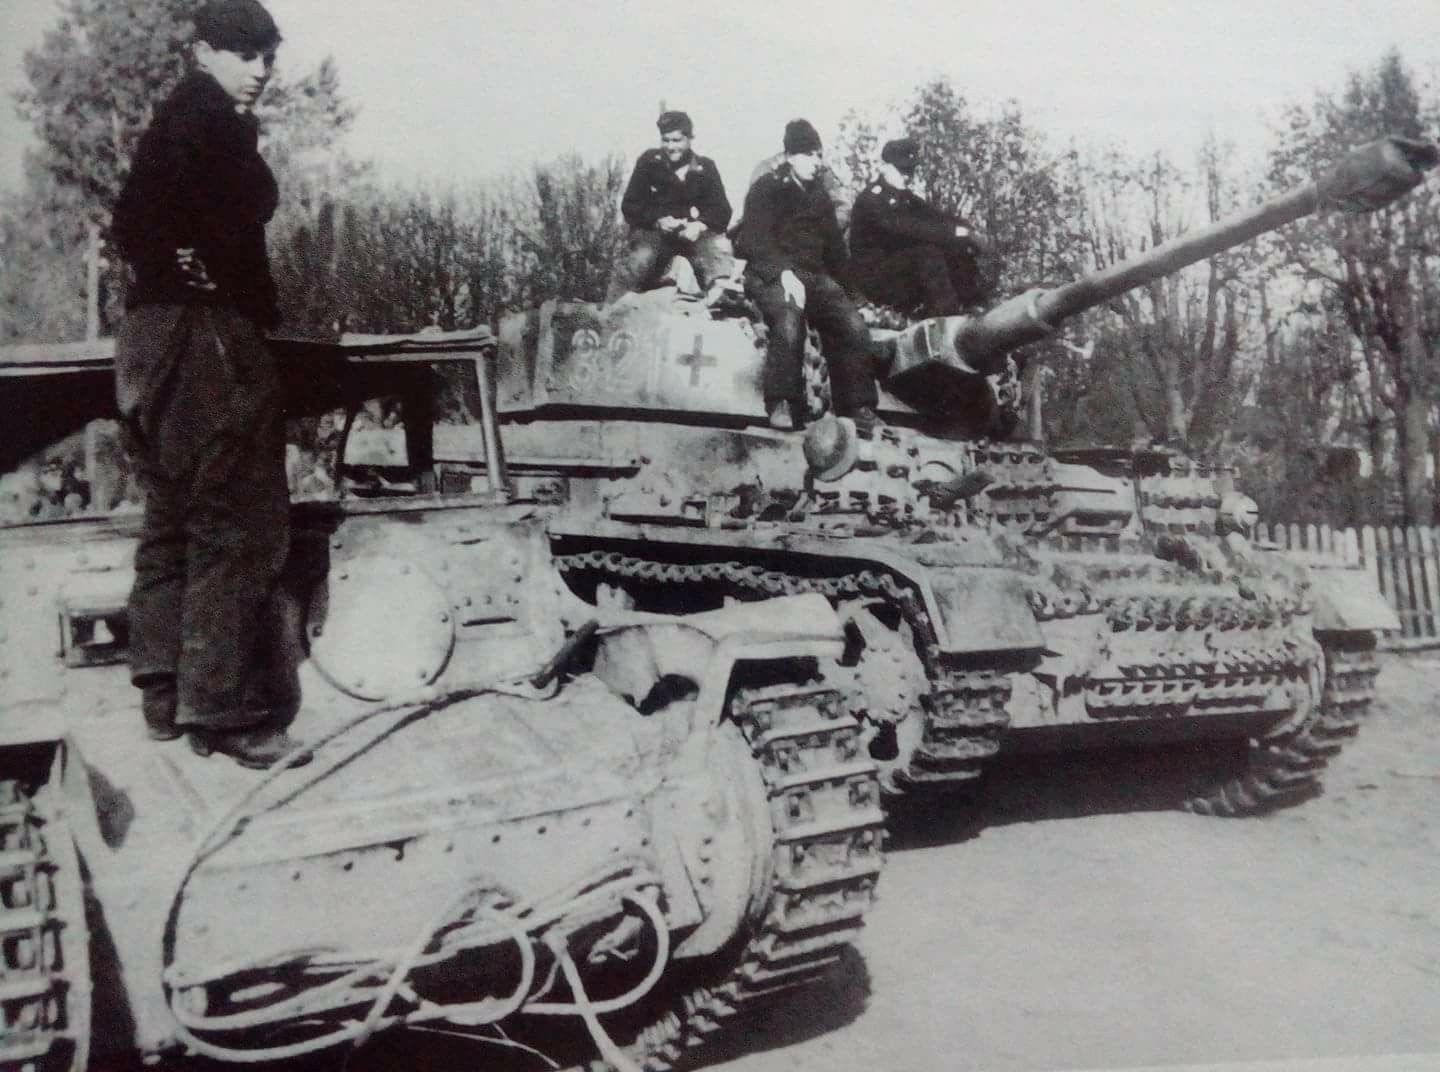 Panzer IV of the 20 Panzer Division crossing a modify Panzer